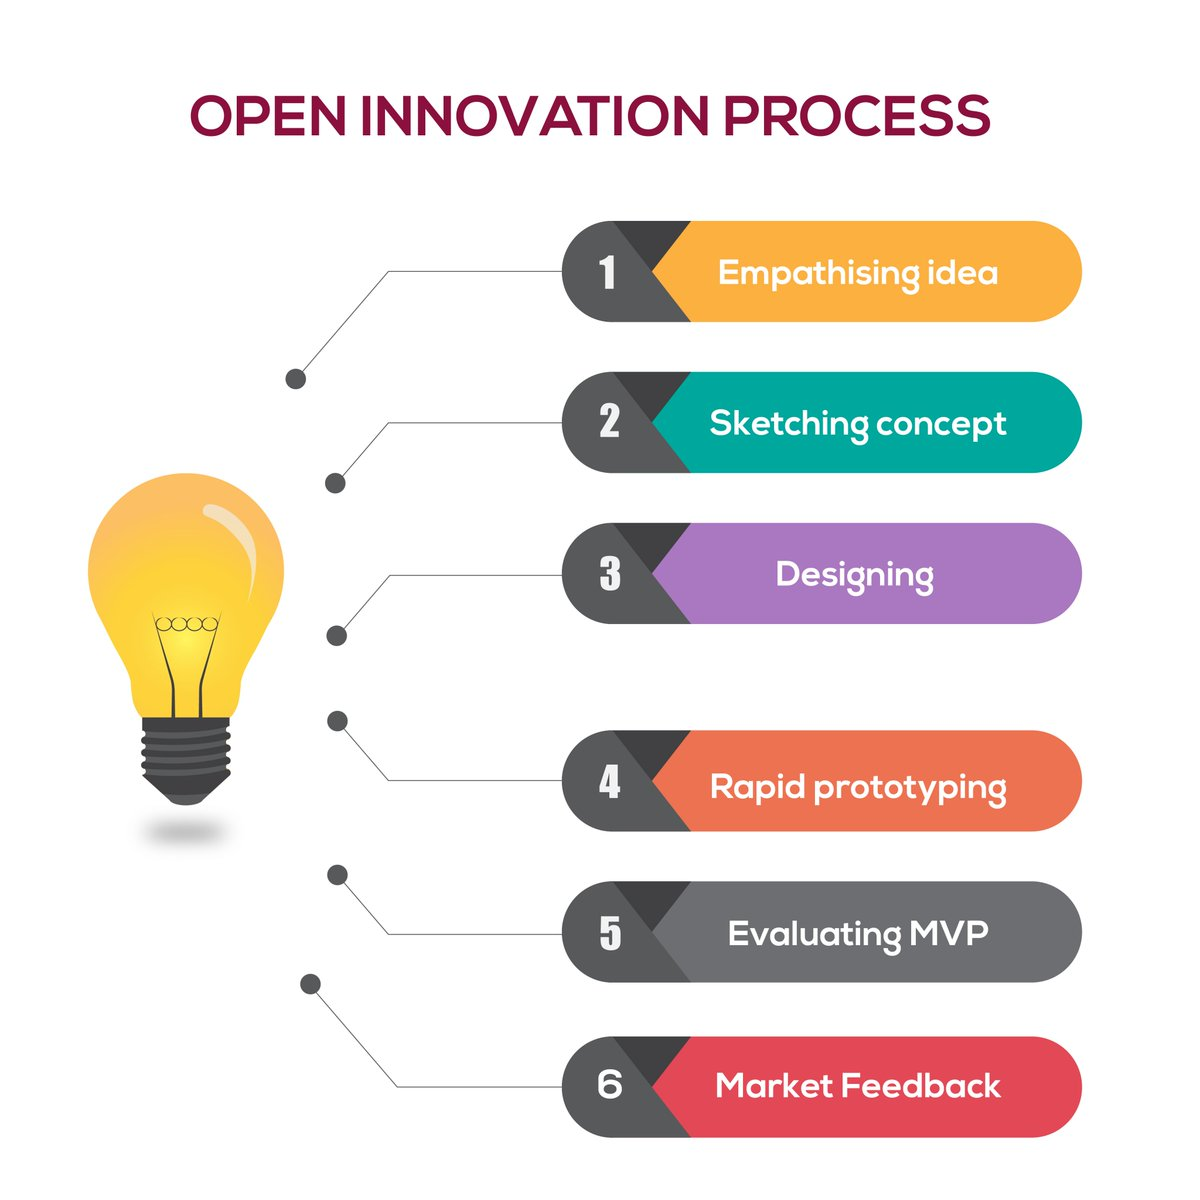 Visualisation of the six stages of #openinnovation process.  #userexperience #uxresearch #uxdesign #uxlivinglab & #uxprocess #TWICE #Delight #MOREANDMORE500K #Germany #UnitedKingdom #Singapore #Swedenpic.twitter.com/vjK6QxUhg7